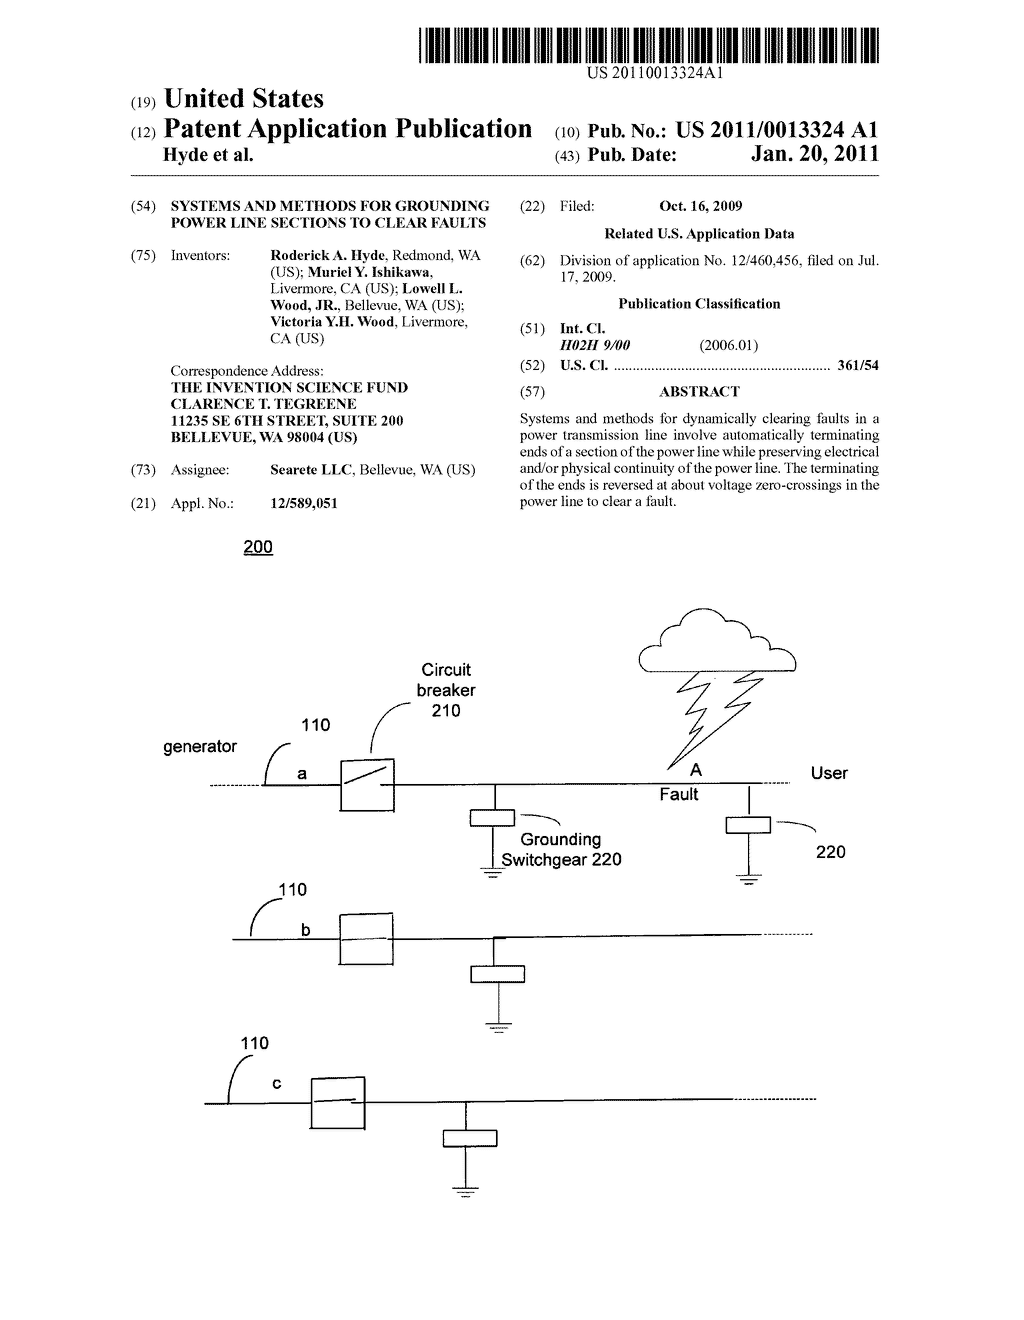 Systems and methods for grounding power line sections to clear faults - diagram, schematic, and image 01